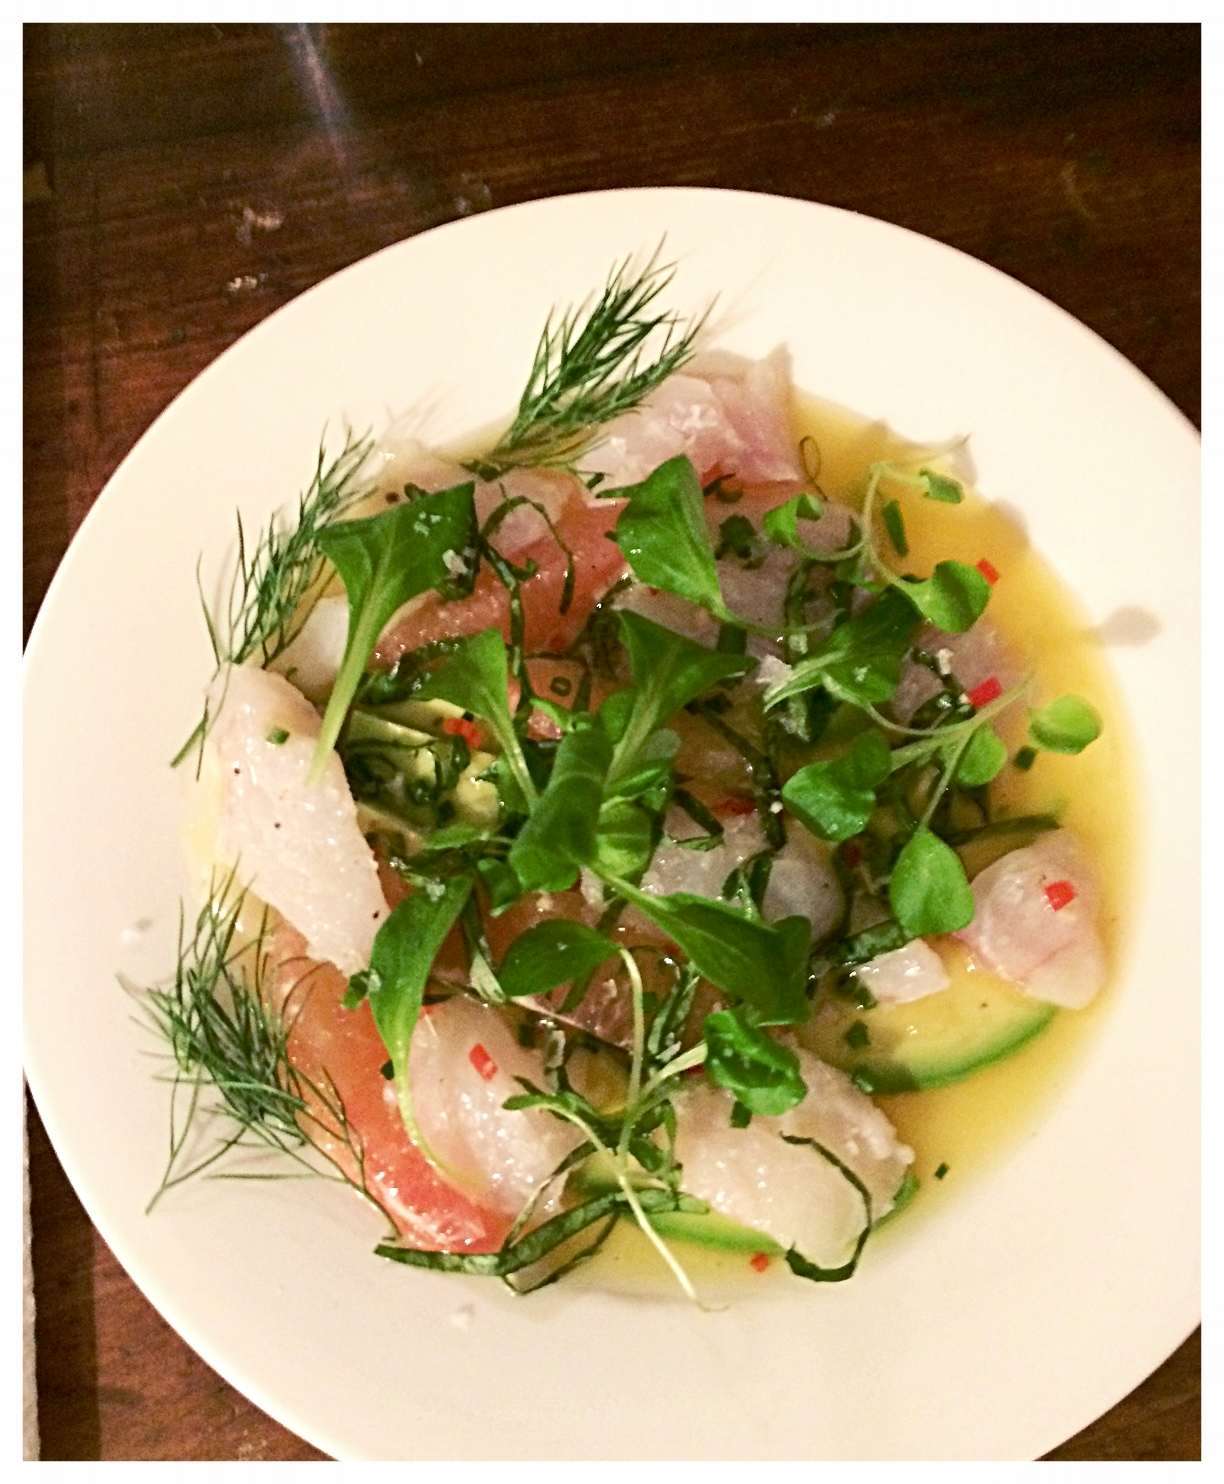 Hamachi crudo with mache, fennel, chile and avocado